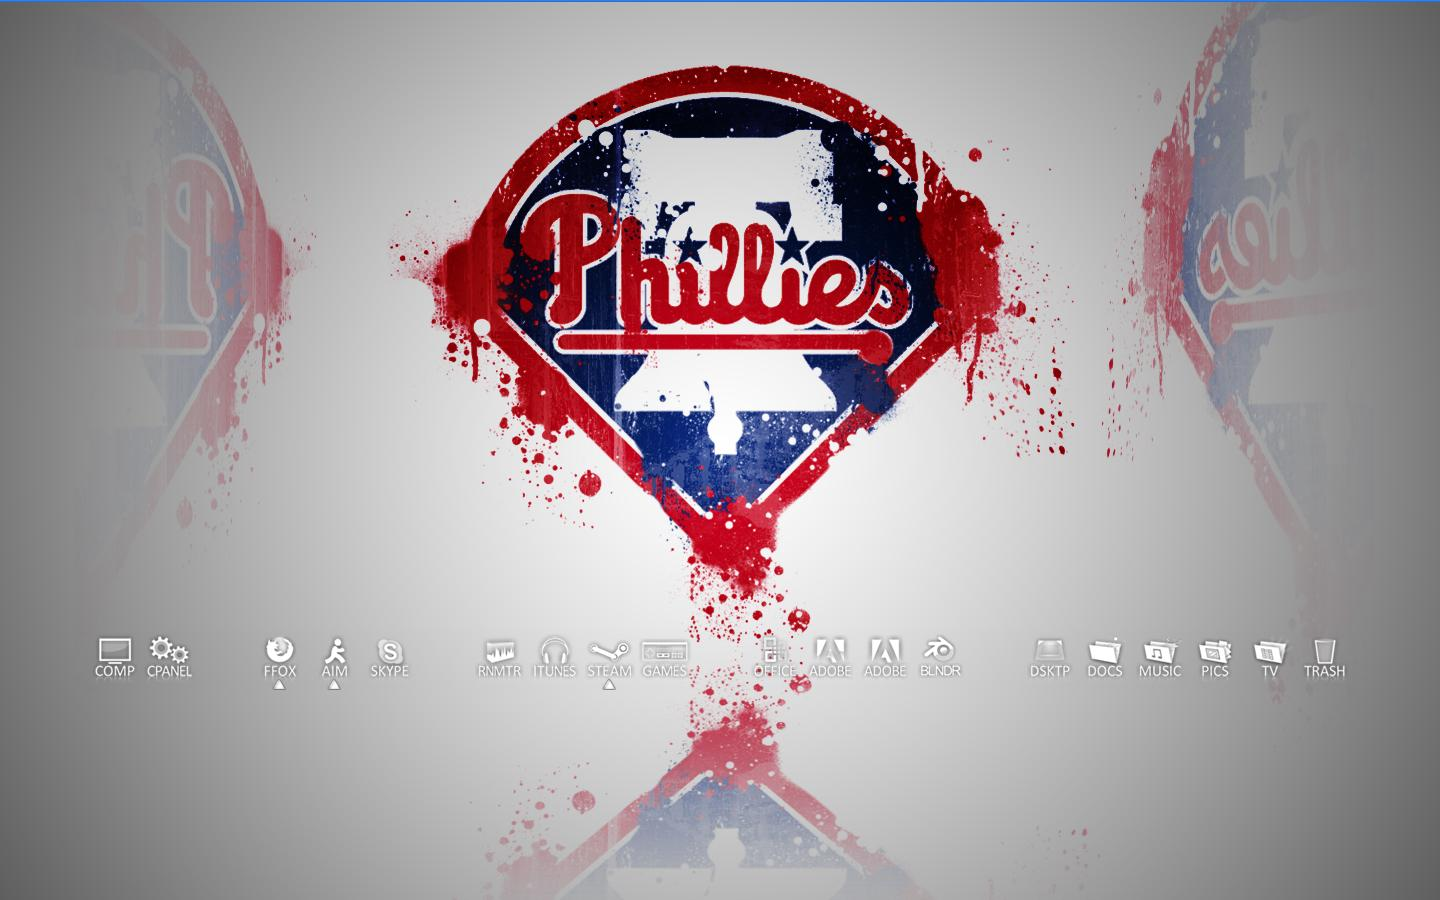 Phillies Wallpaper - HD Wallpapers